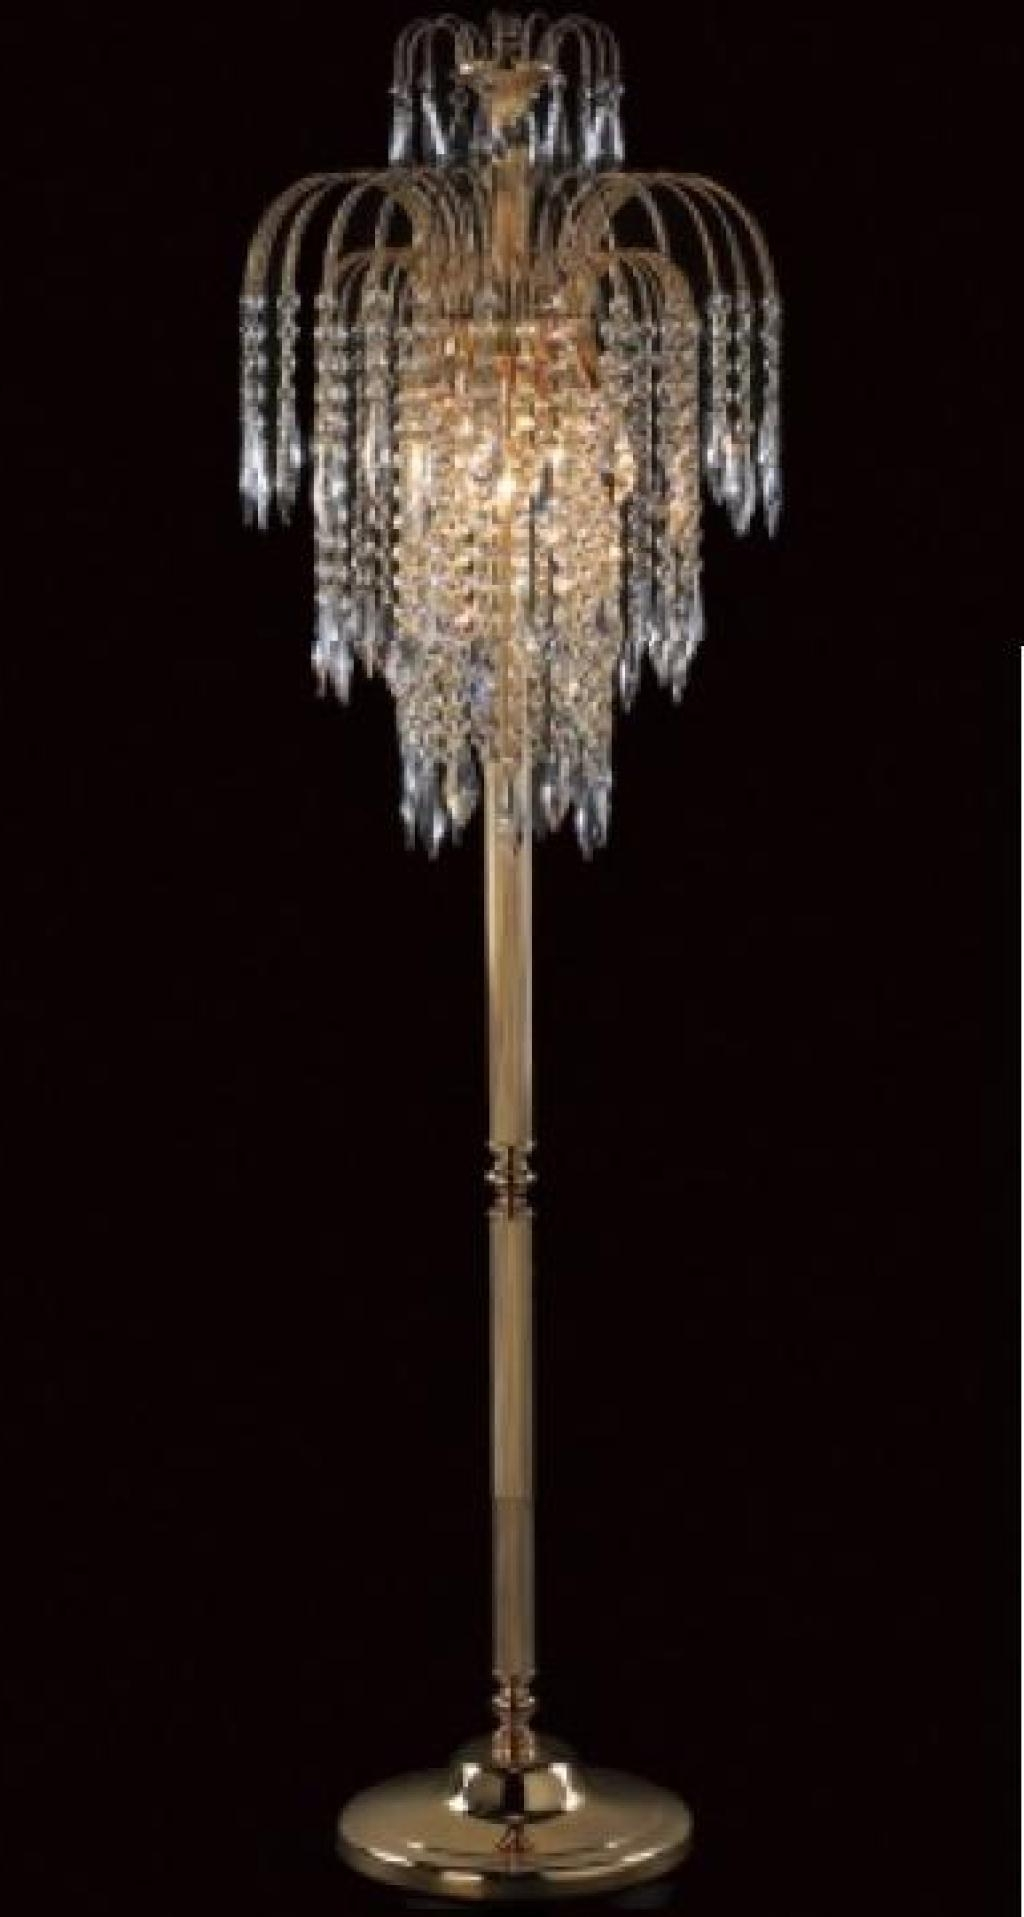 Black Chandelier Standing Lamps Throughout Well Liked Standing Chandelier Floor Lamp – Chandelier Designs (View 2 of 20)